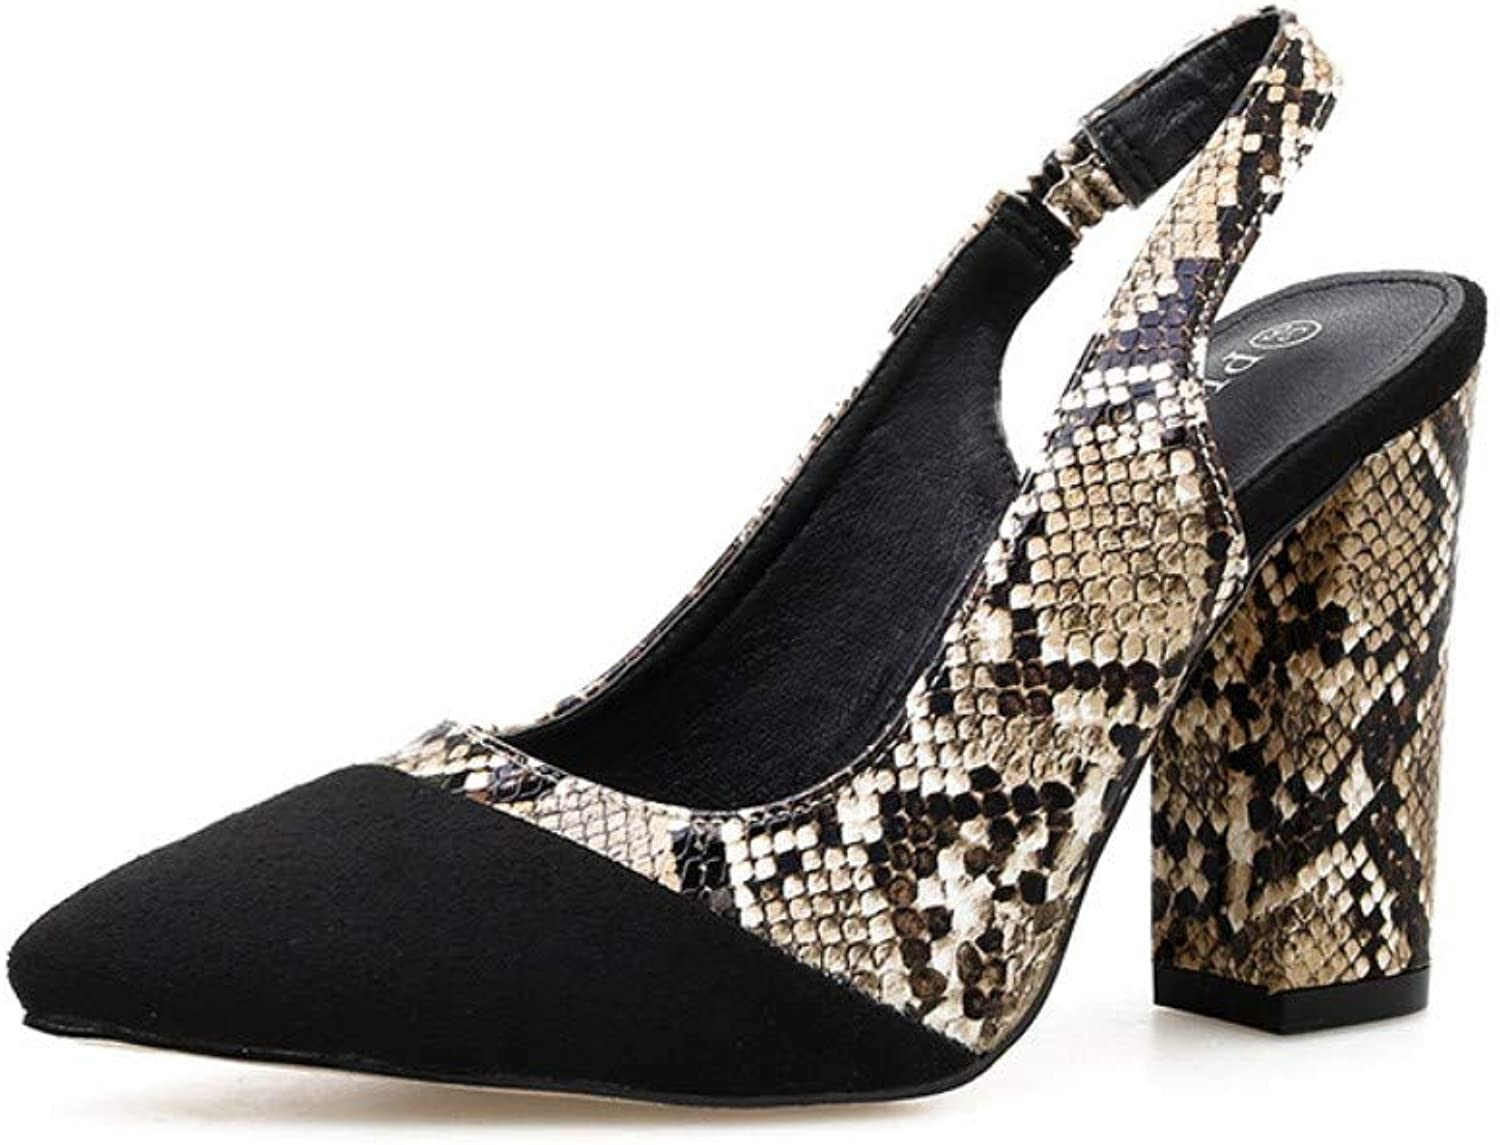 JQfashion Sexy Spring and Summer Women's shoes with Thick Heels and Sharp Serpentine Pattern